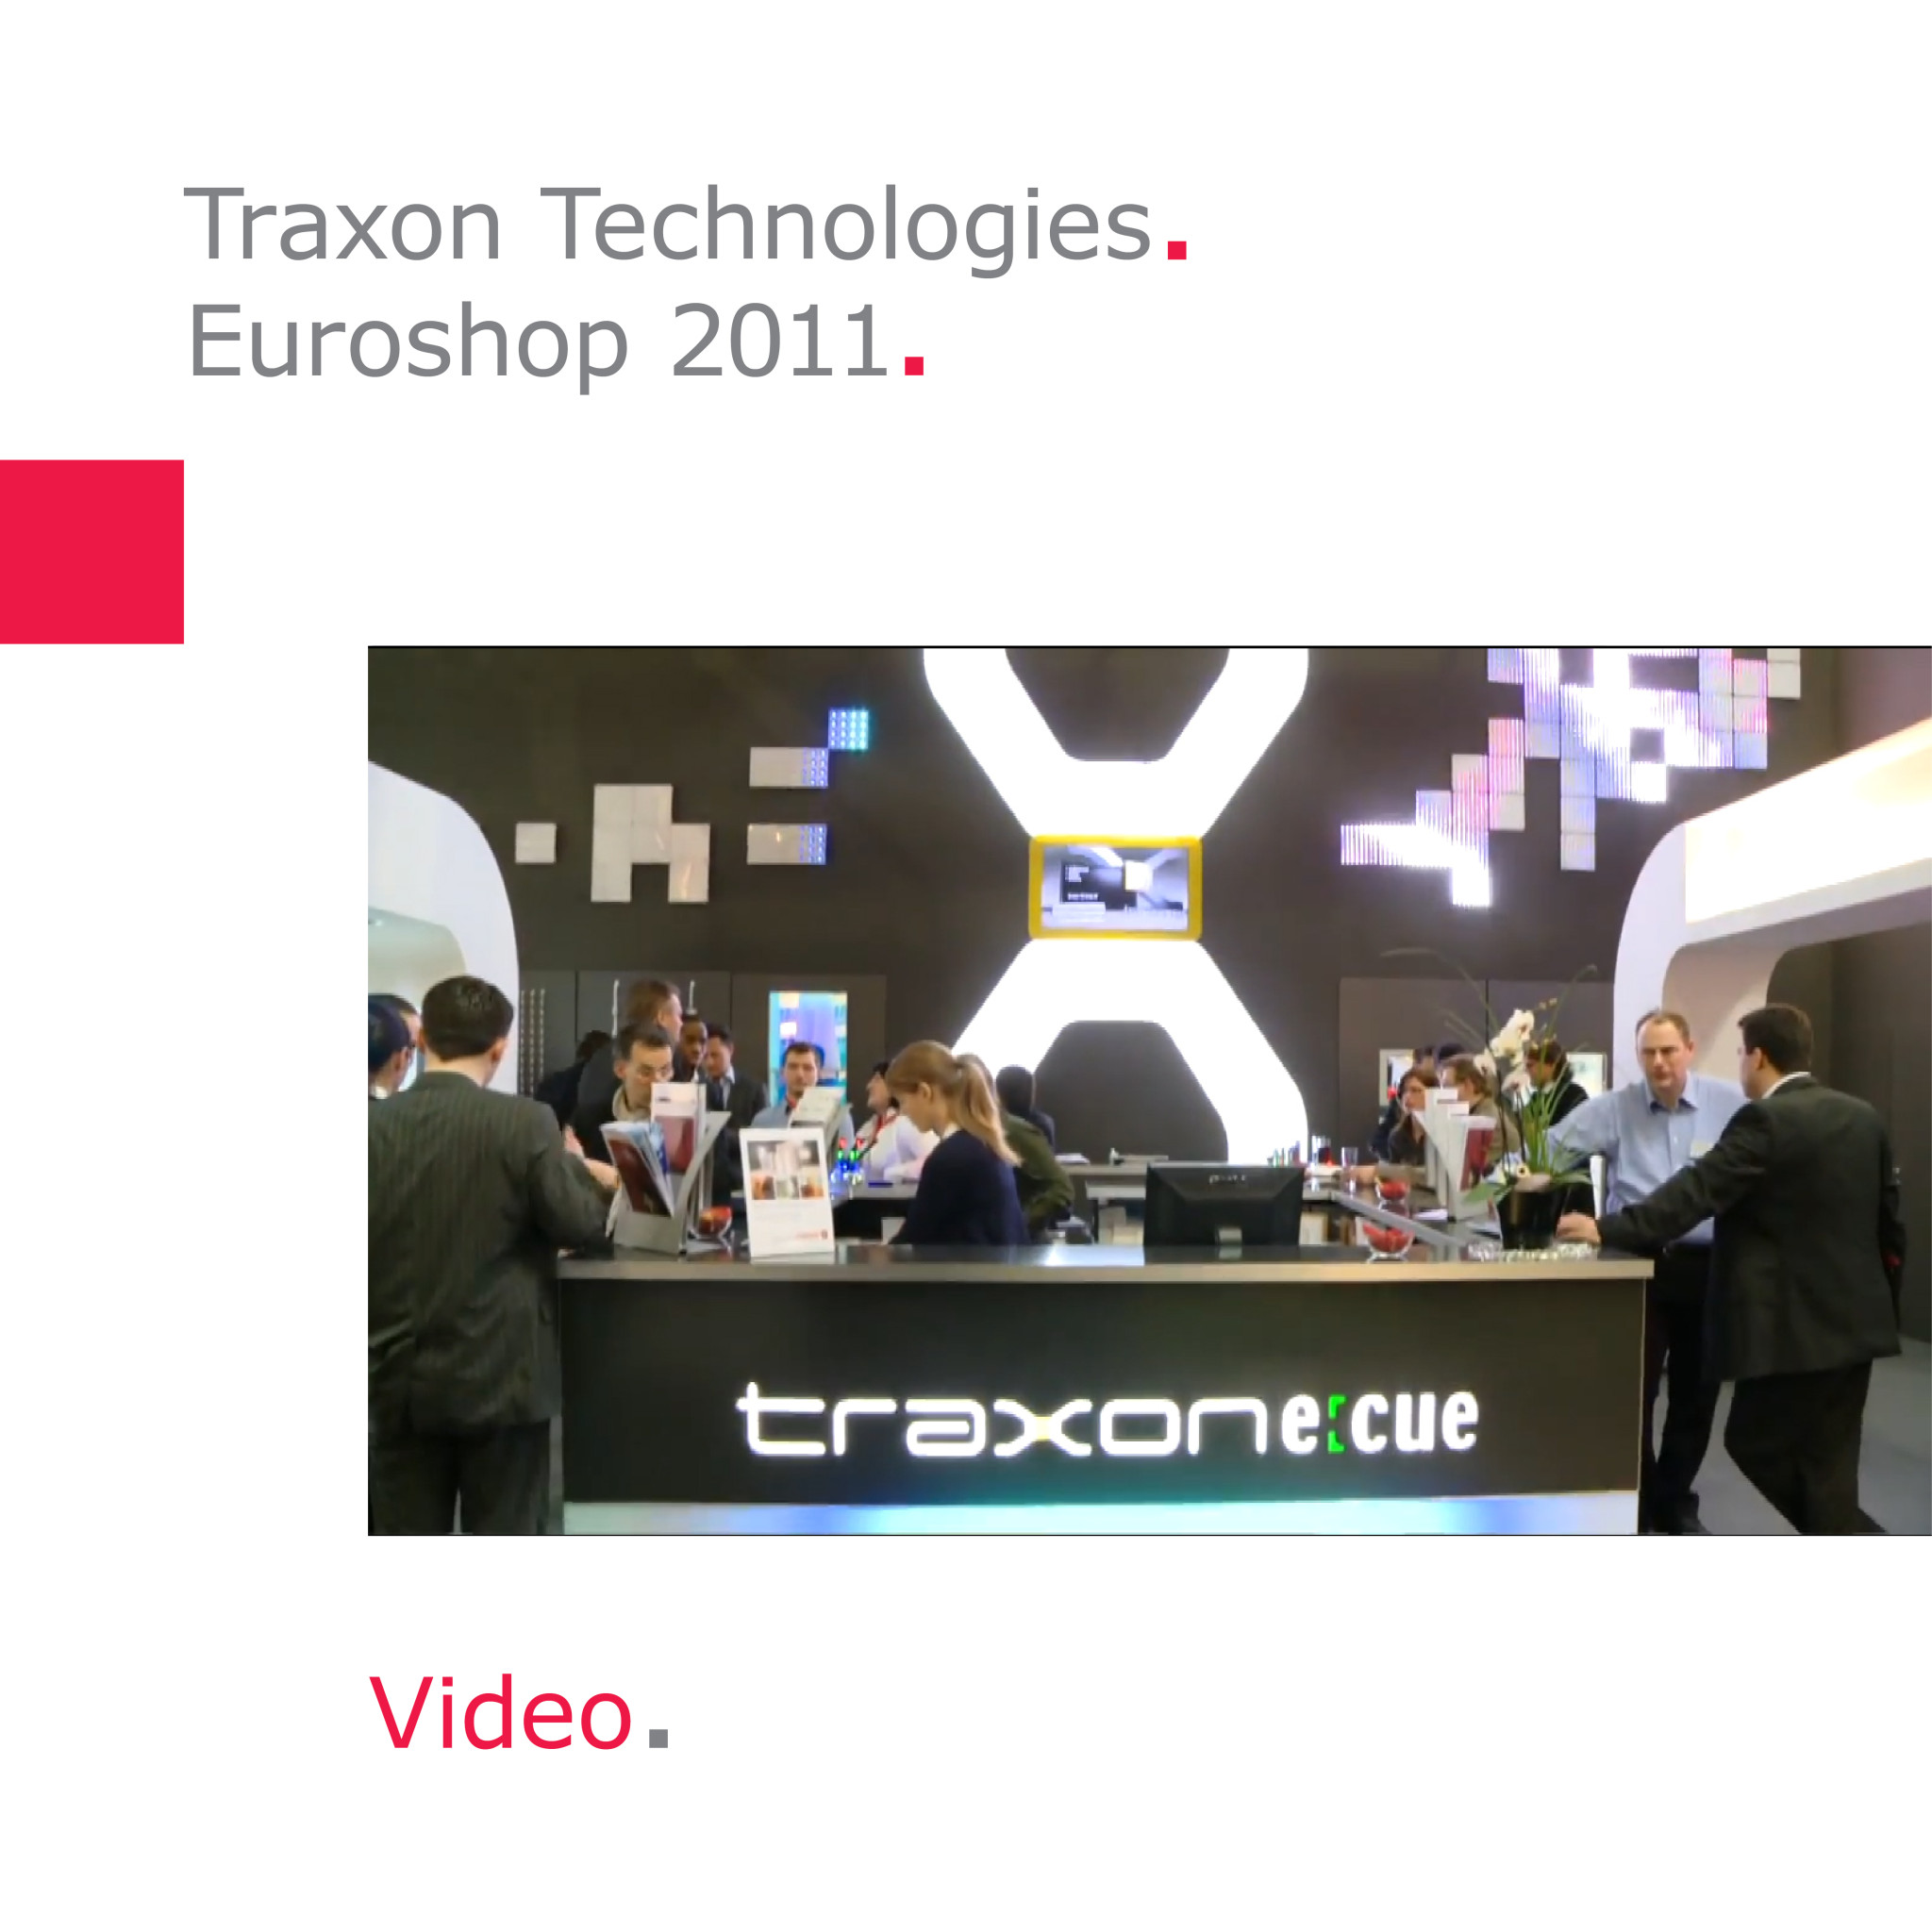 Traxon Technologies | Messestand Euroshop 2011